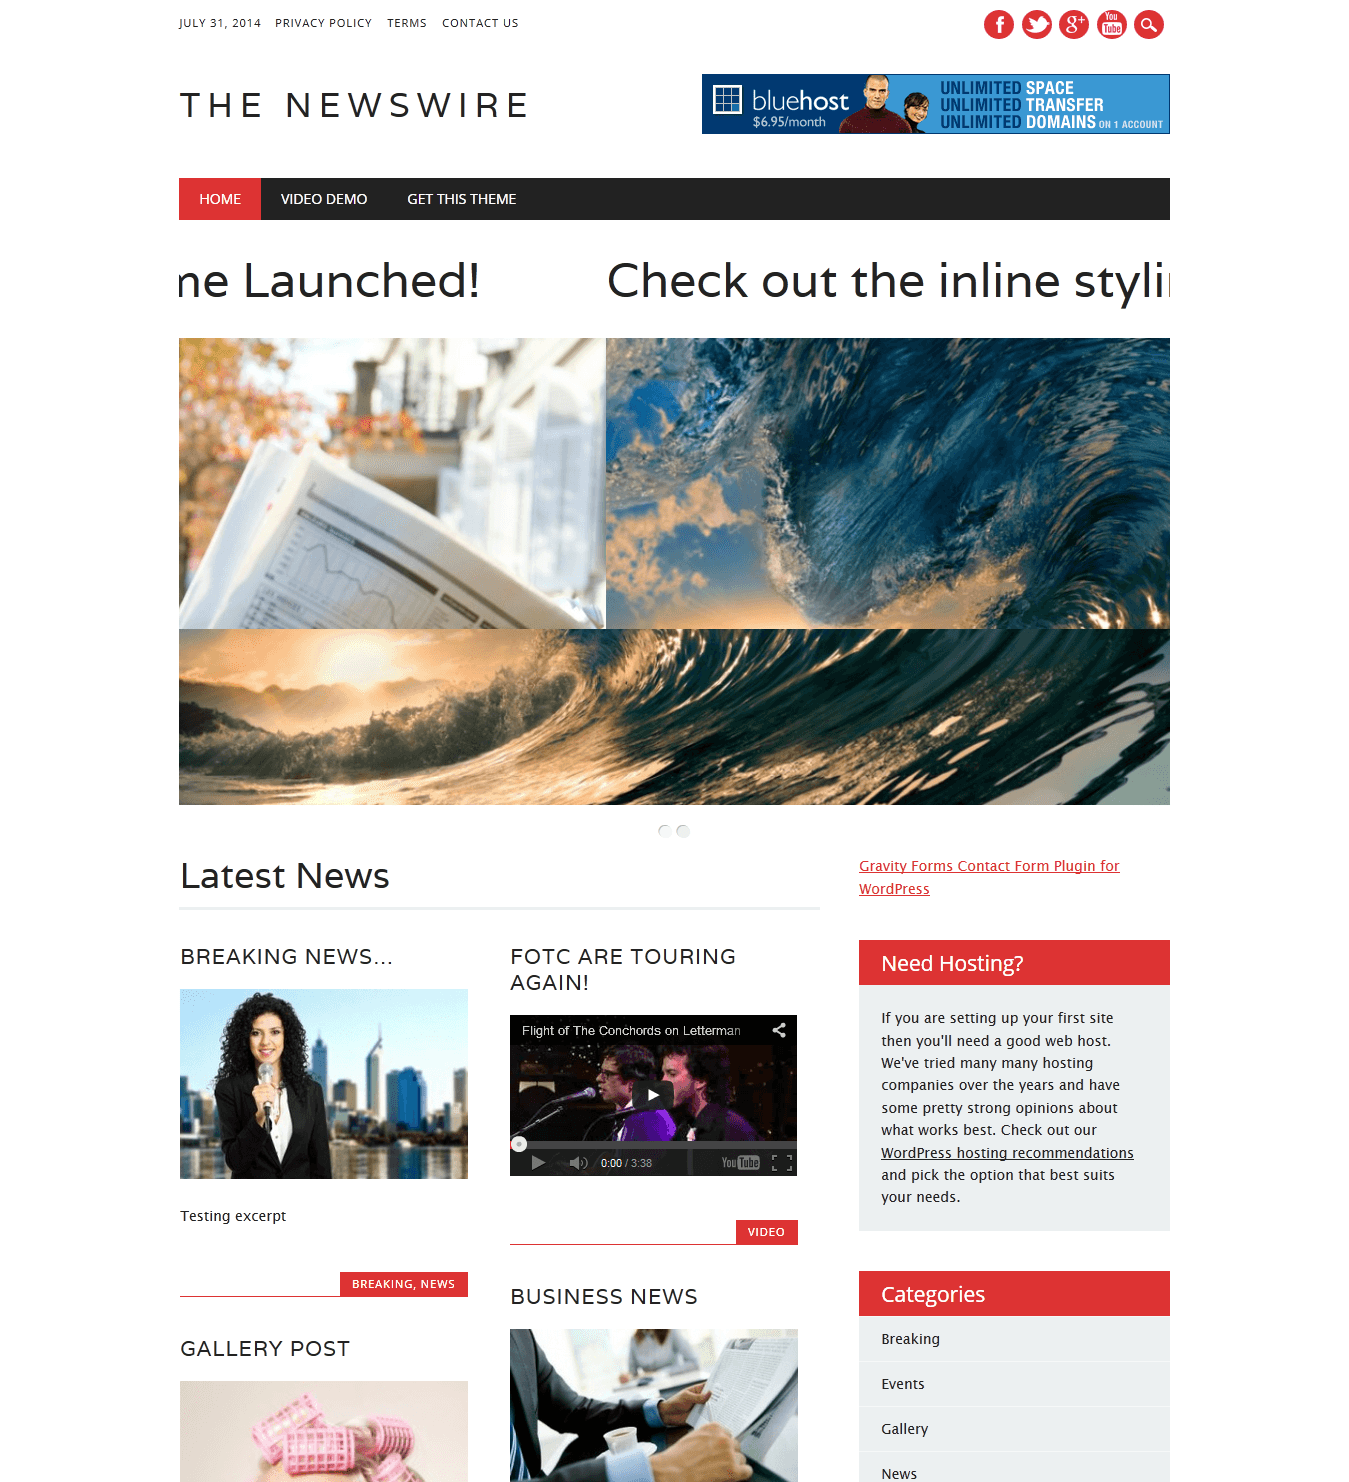 The Newswire